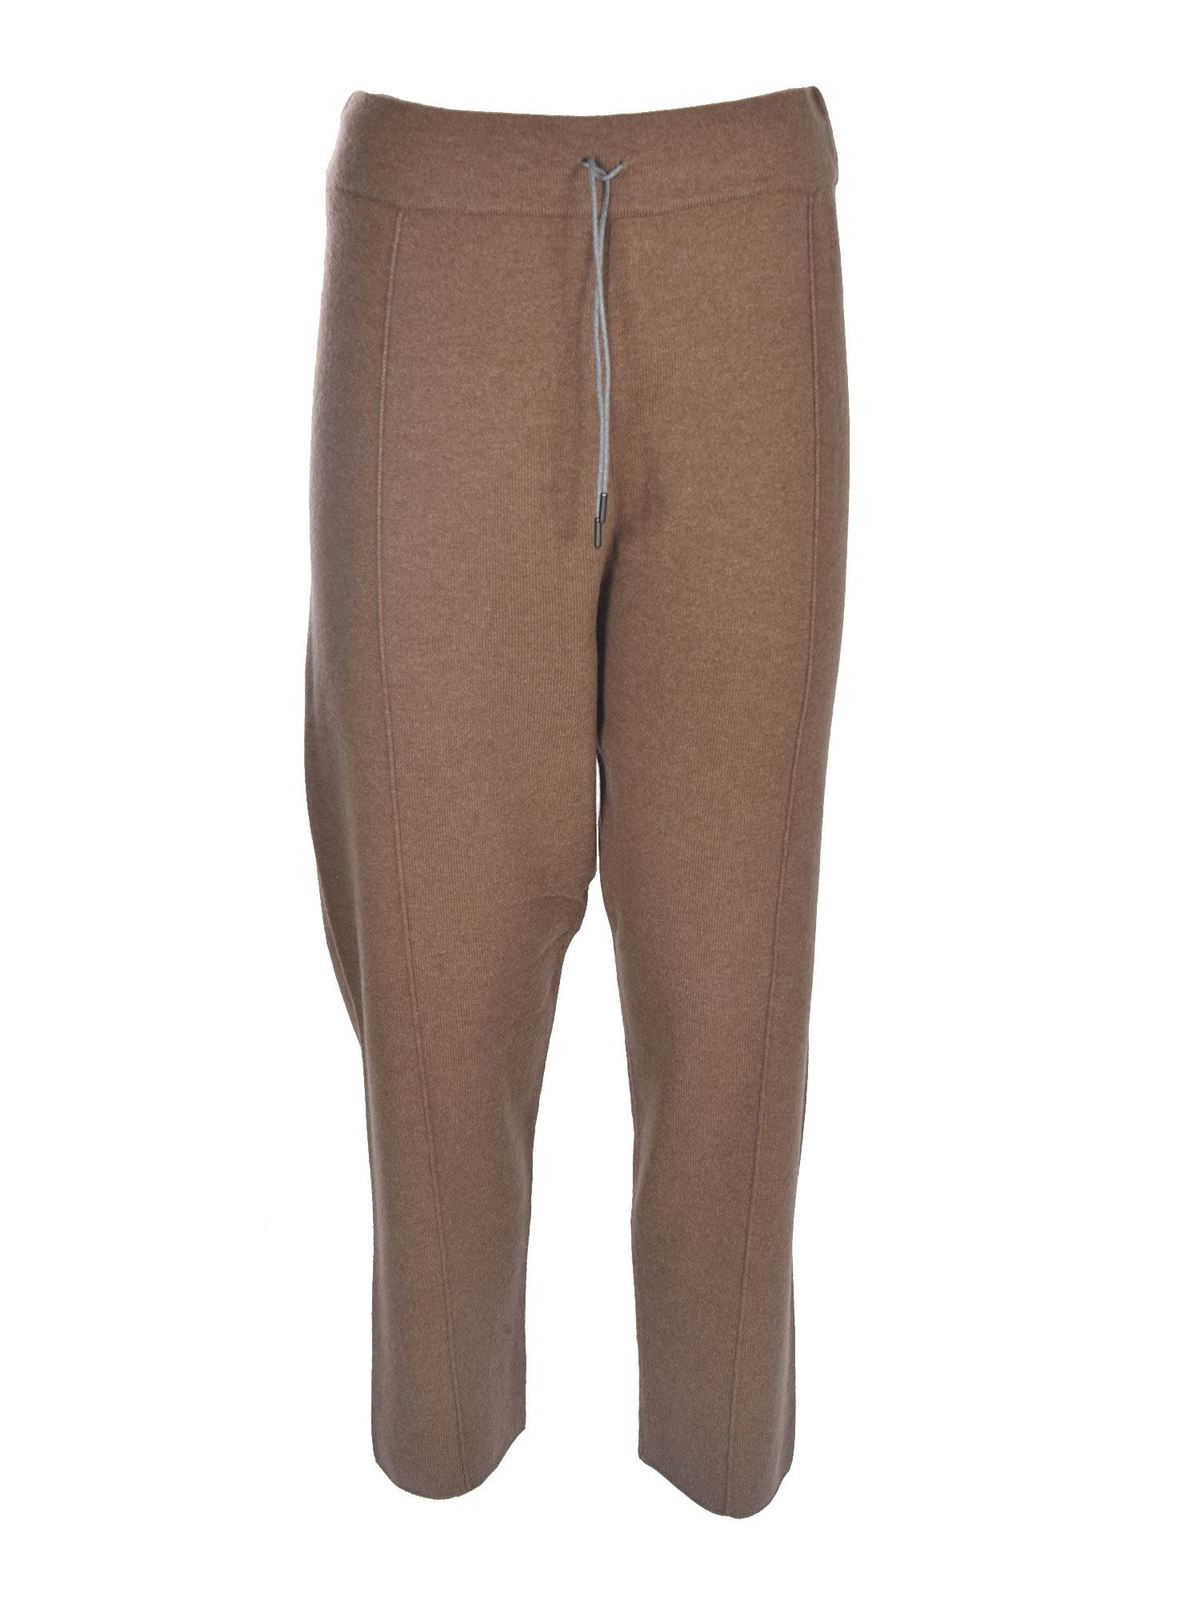 Fabiana Filippi KNITTED PANTS IN BROWN